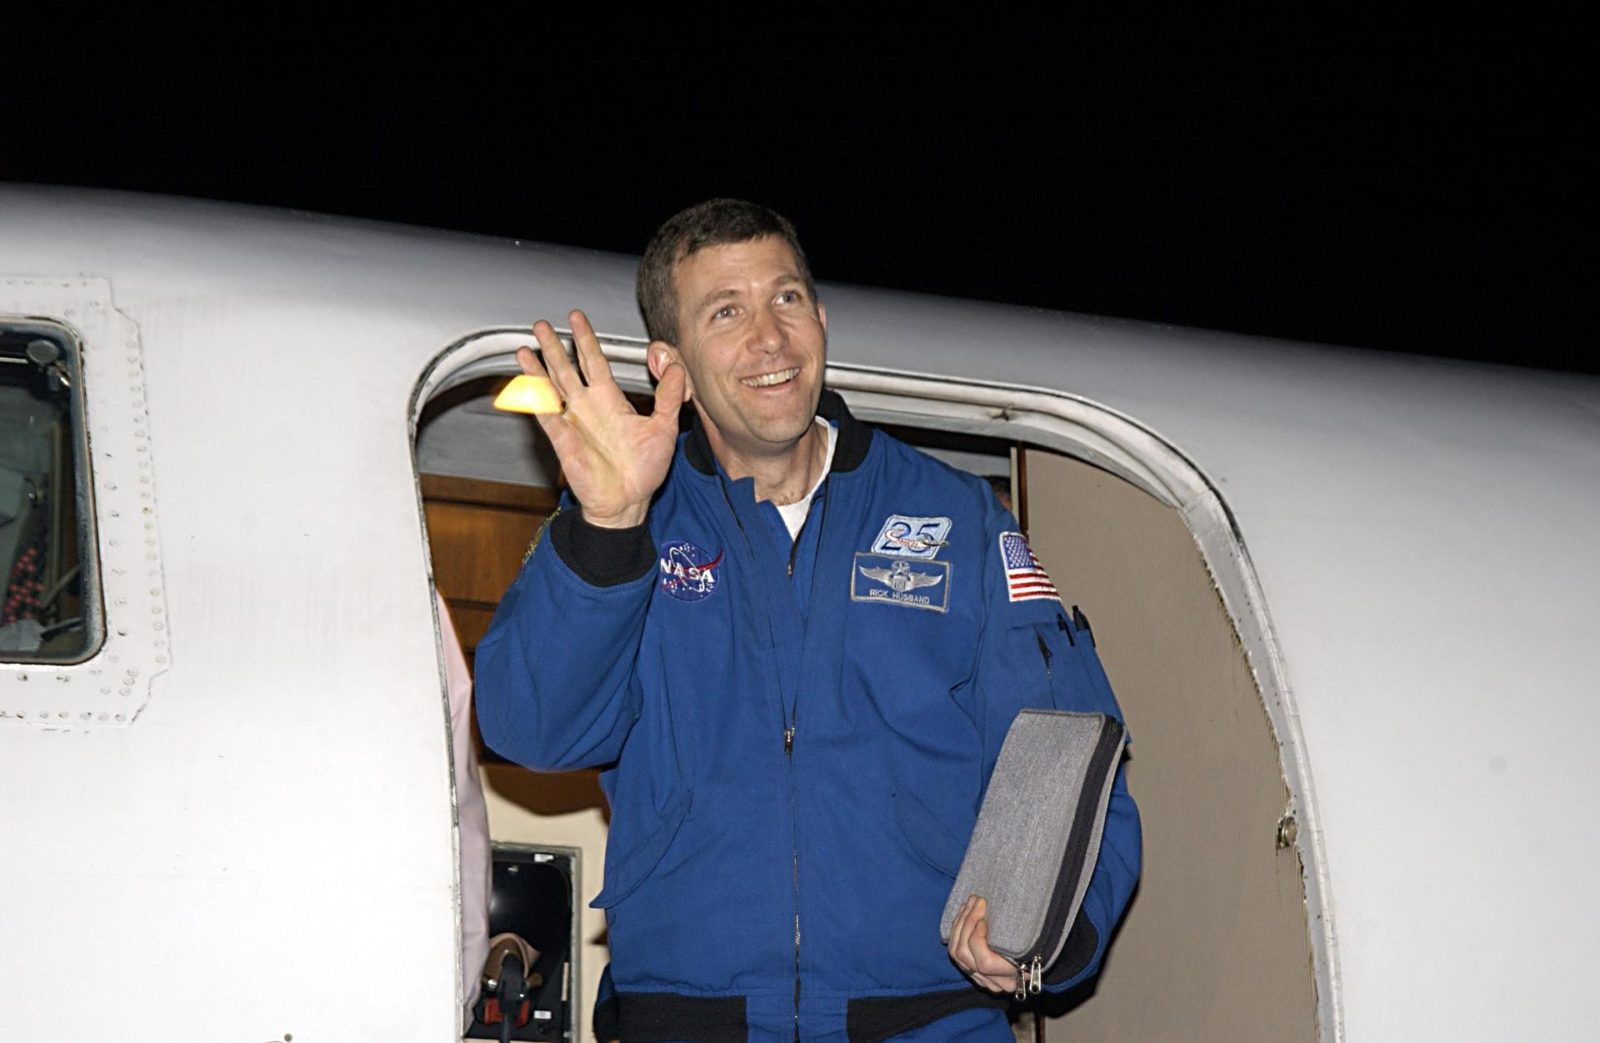 """KENNEDY SPACE CENTER, FLA. - STS-107 Commander Rick Husband waves to spectators as he arrives at KSC for pre-launch preparations. STS-107 is a mission devoted to research and will include more than 80 experiments that will study Earth and space science, advanced technology development, and astronaut health and safety. The payload on Space Shuttle Columbia includes FREESTAR (Fast Reaction Experiments Enabling Science, Technology, Applications and Research) and the SHI Research Double Module (SHI/RDM), known as SPACEHAB.  Experiments on the module range from material sciences to life sciences.  The crew includes Payload Specialist Ilan Ramon, the first Israeli astronaut.  Other crew members are Pilot William """"Willie"""" McCool, Payload Commander Michael Anderson and Mission Specialists Kalpana Chawla, David Brown and Laurel Clark.  Launch of Columbia is targeted for Jan. 16 between 10 a.m. and 2 p.m. KSC-03pd0046"""